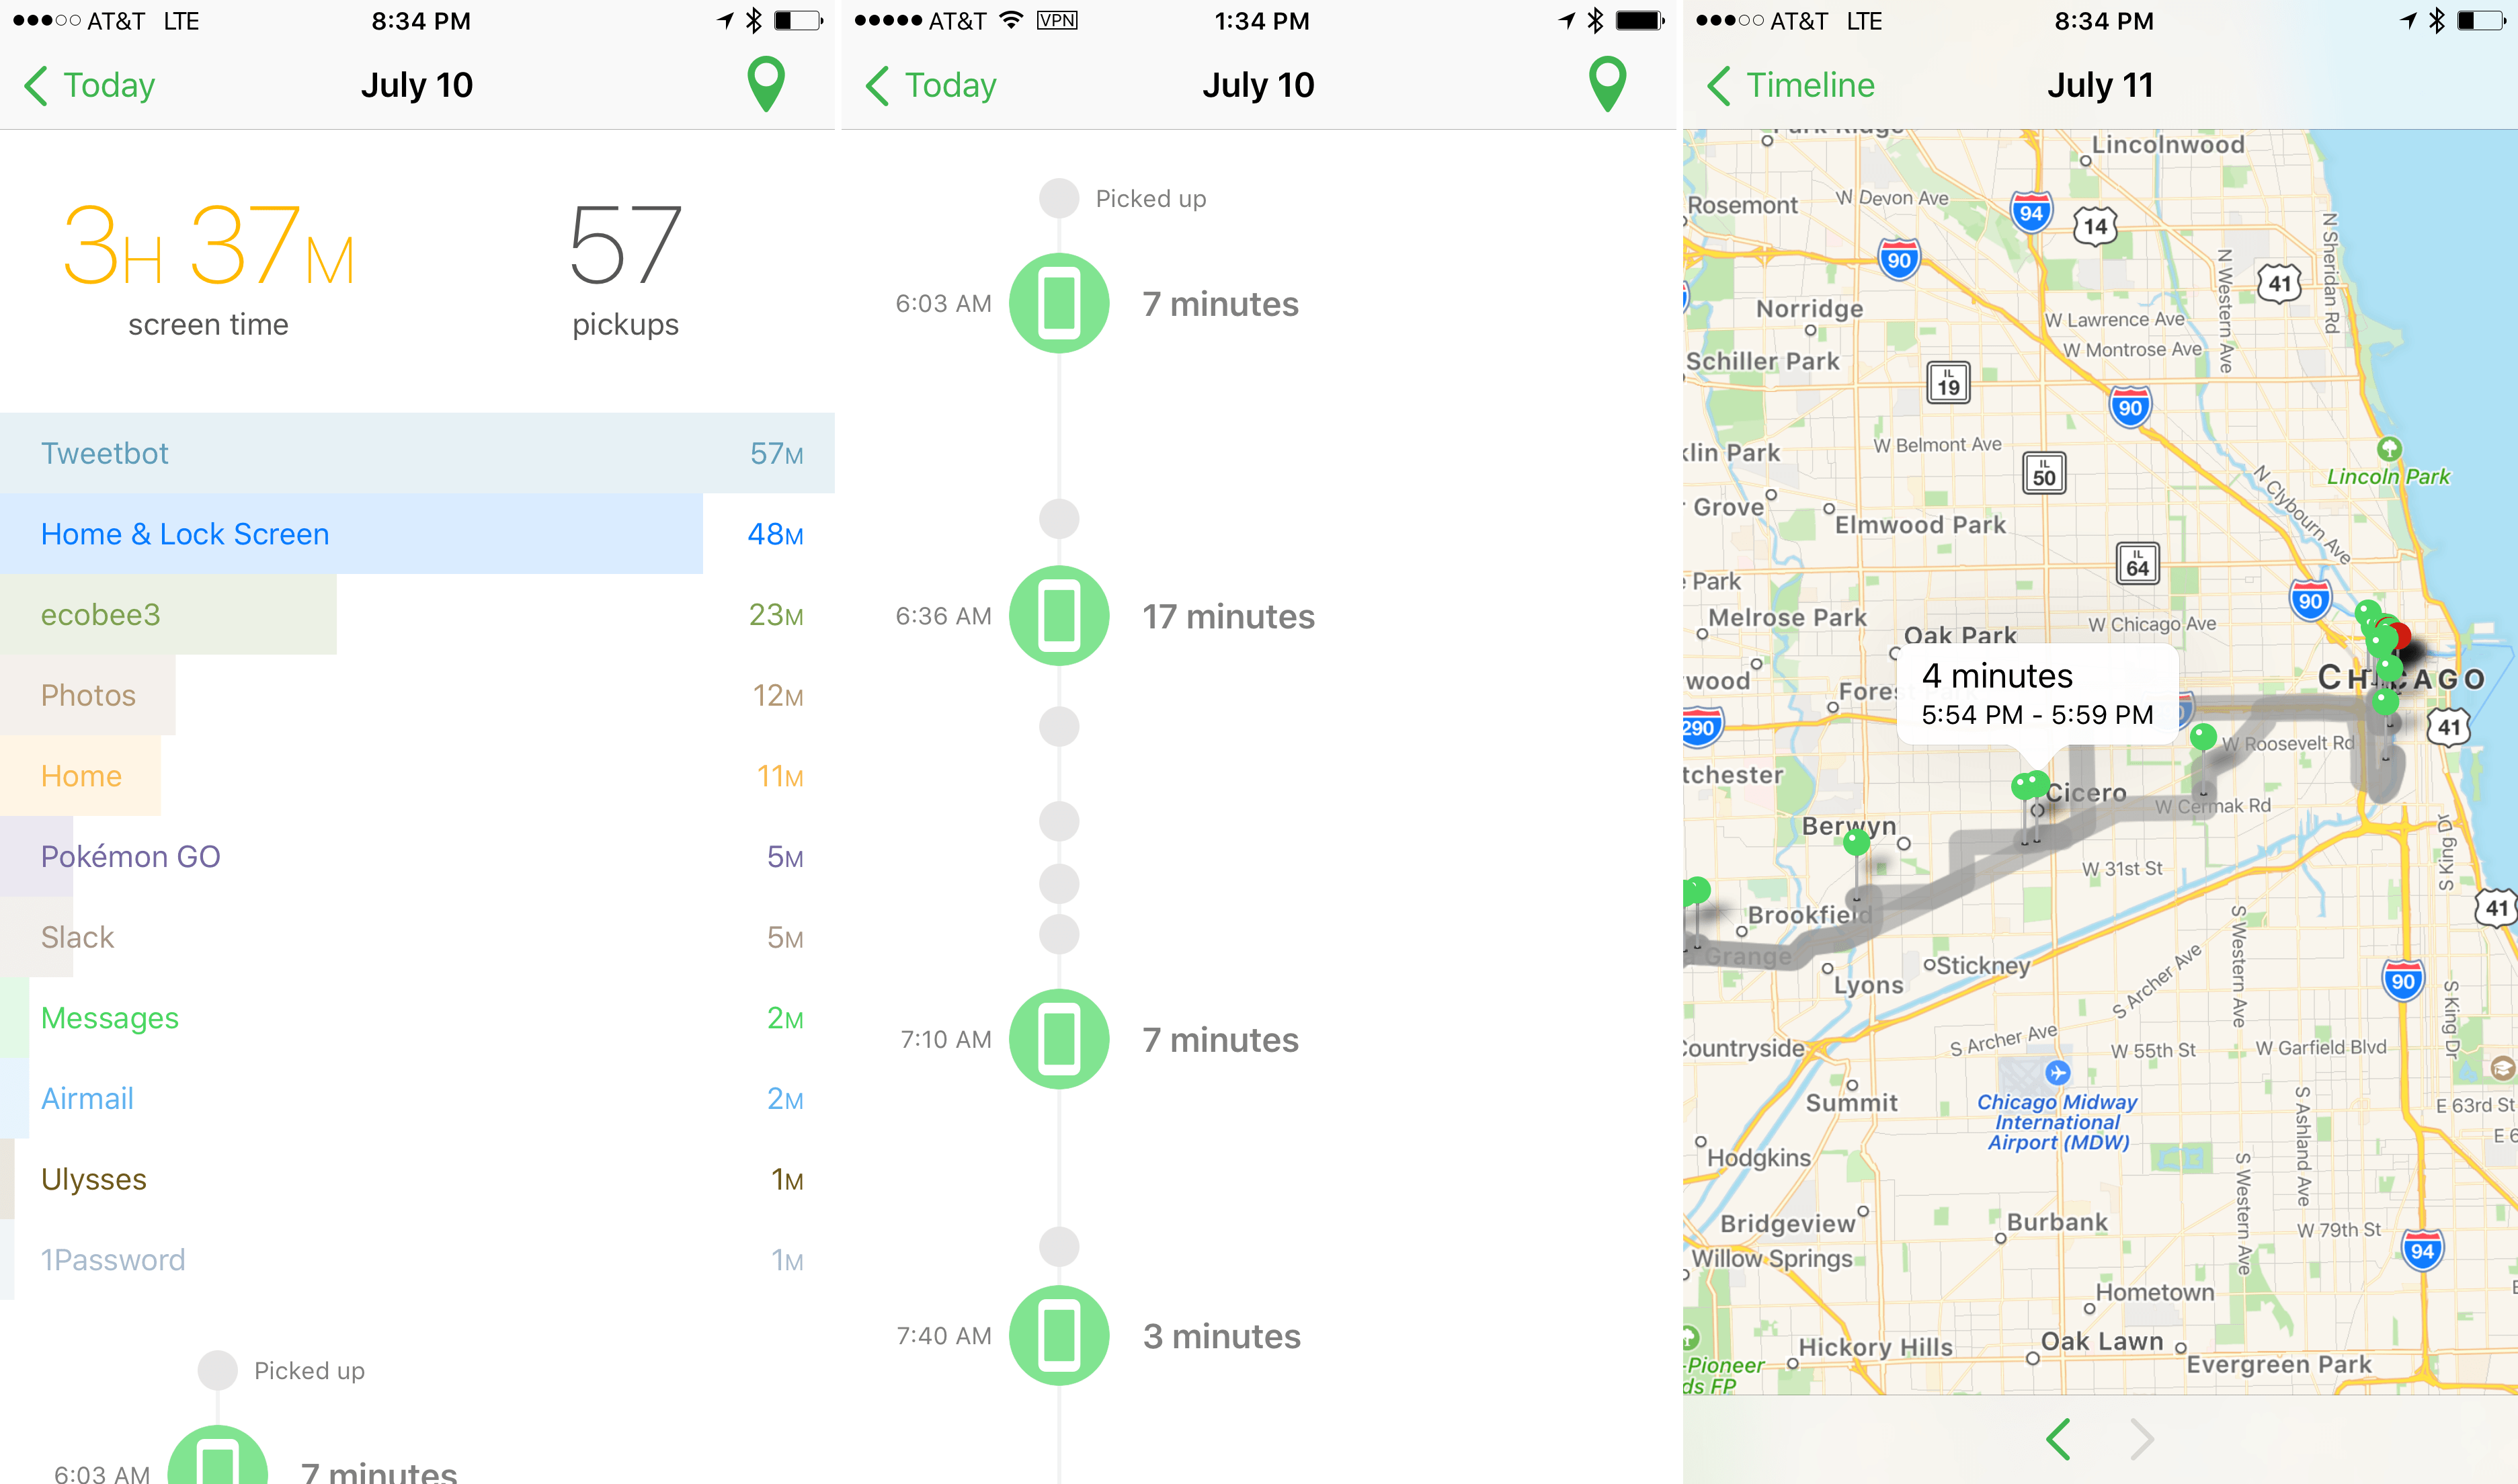 App use details, timeline, and usage map.